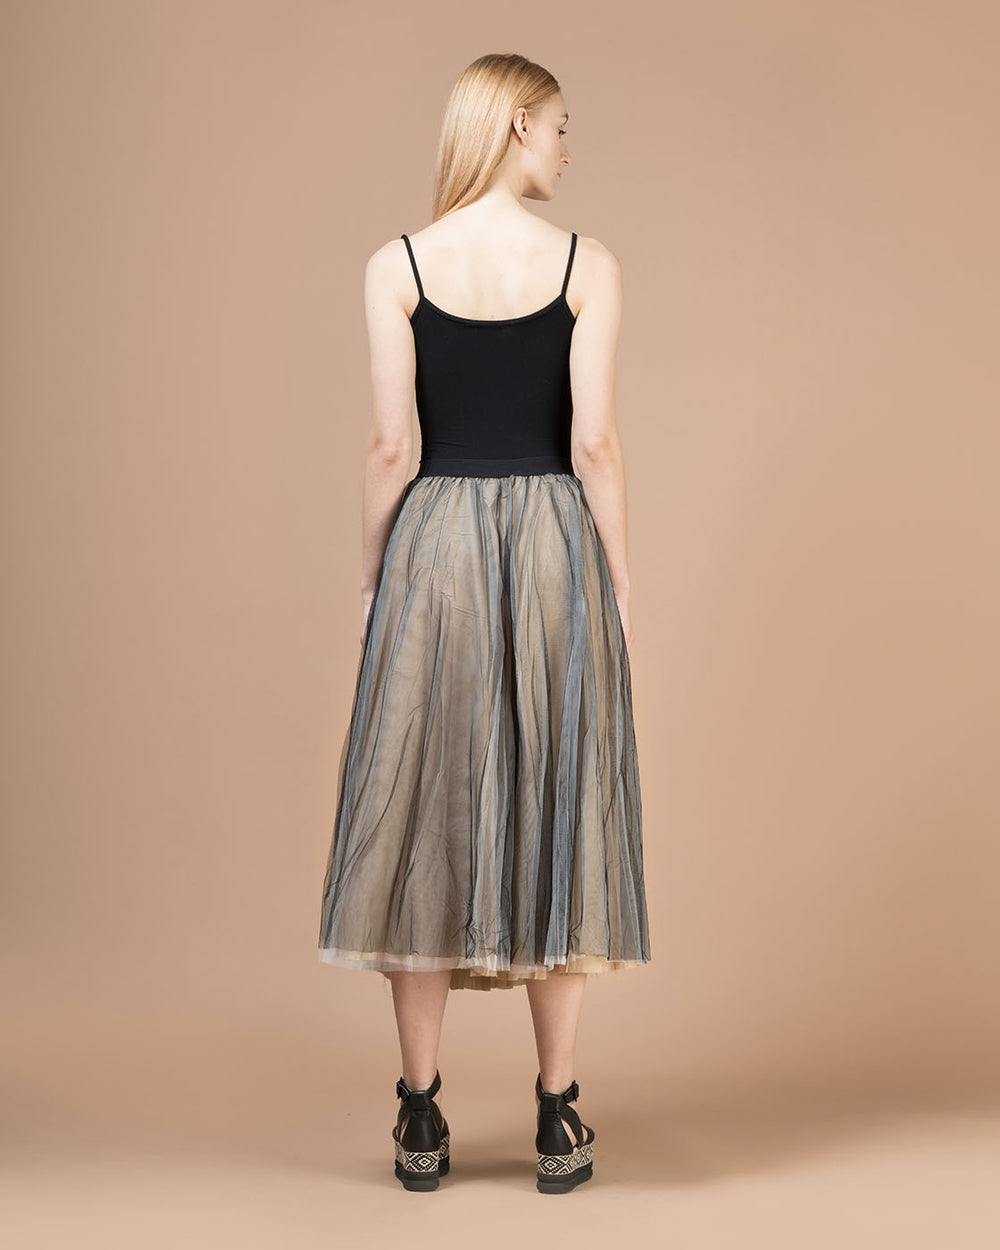 Black & Beige Contrast Tulle Long Skirt